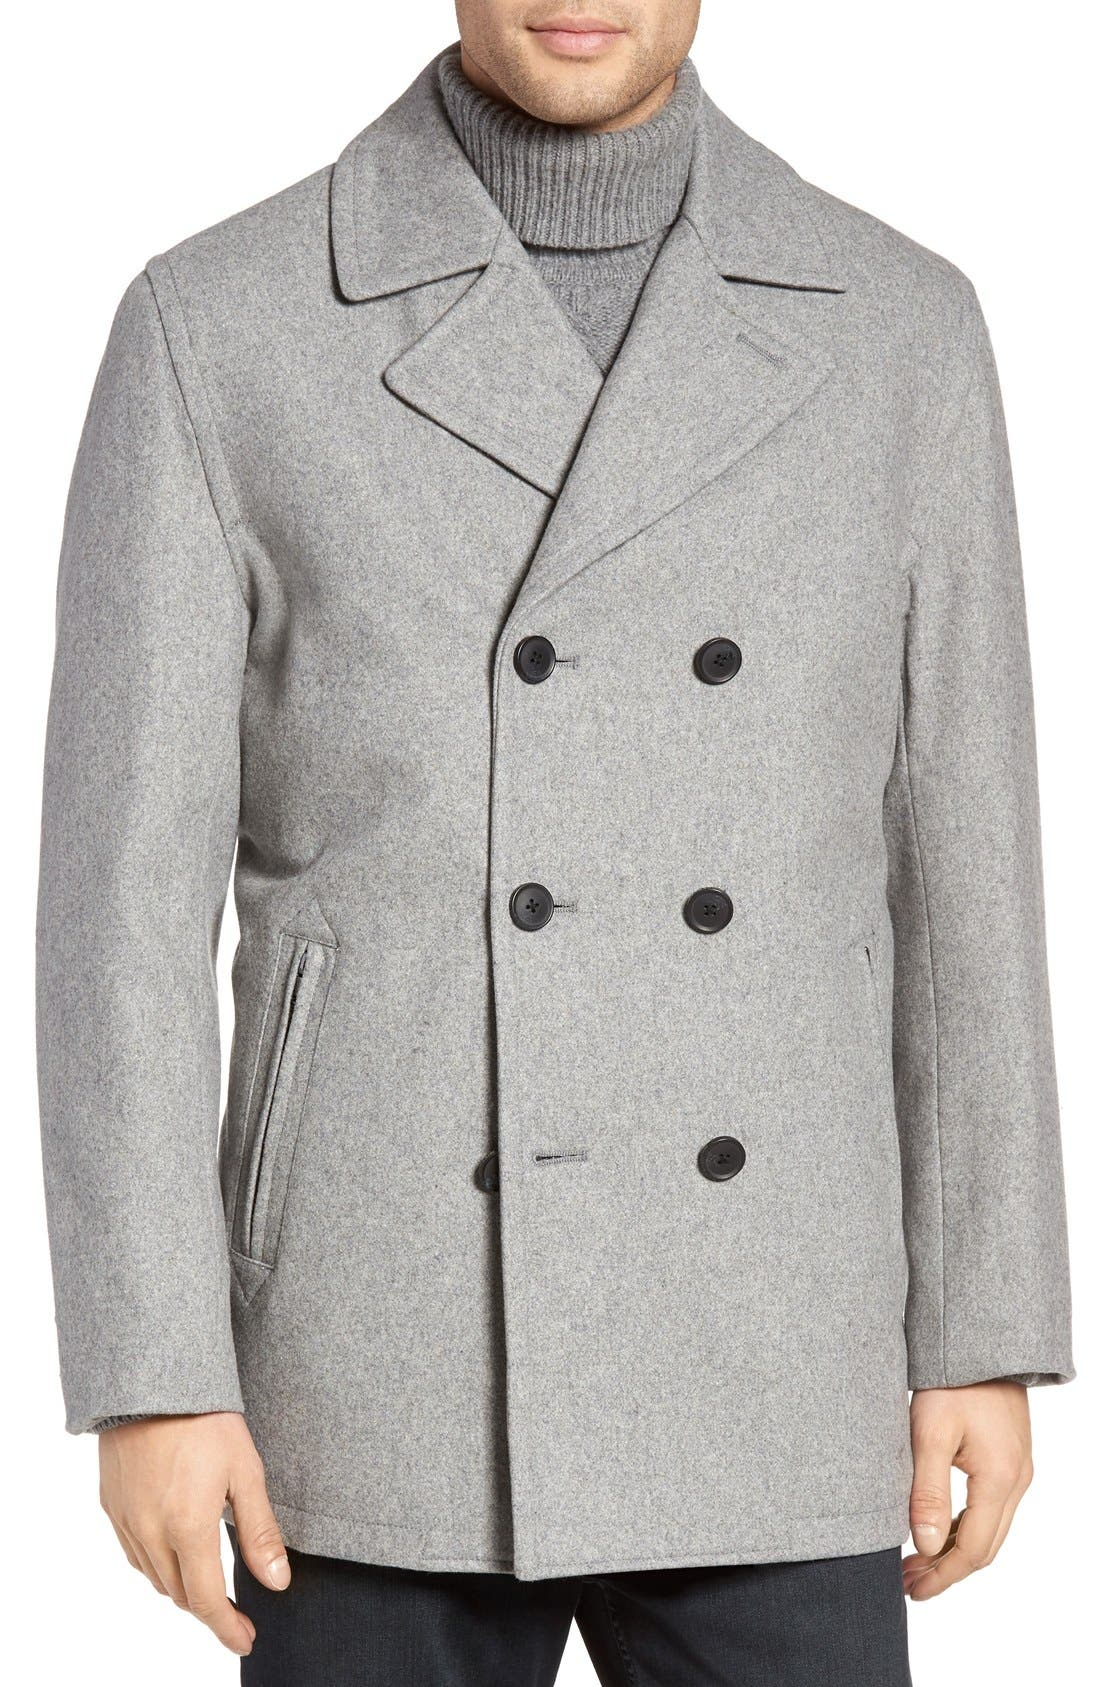 Wool Blend Double Breasted Peacoat,                             Alternate thumbnail 54, color,